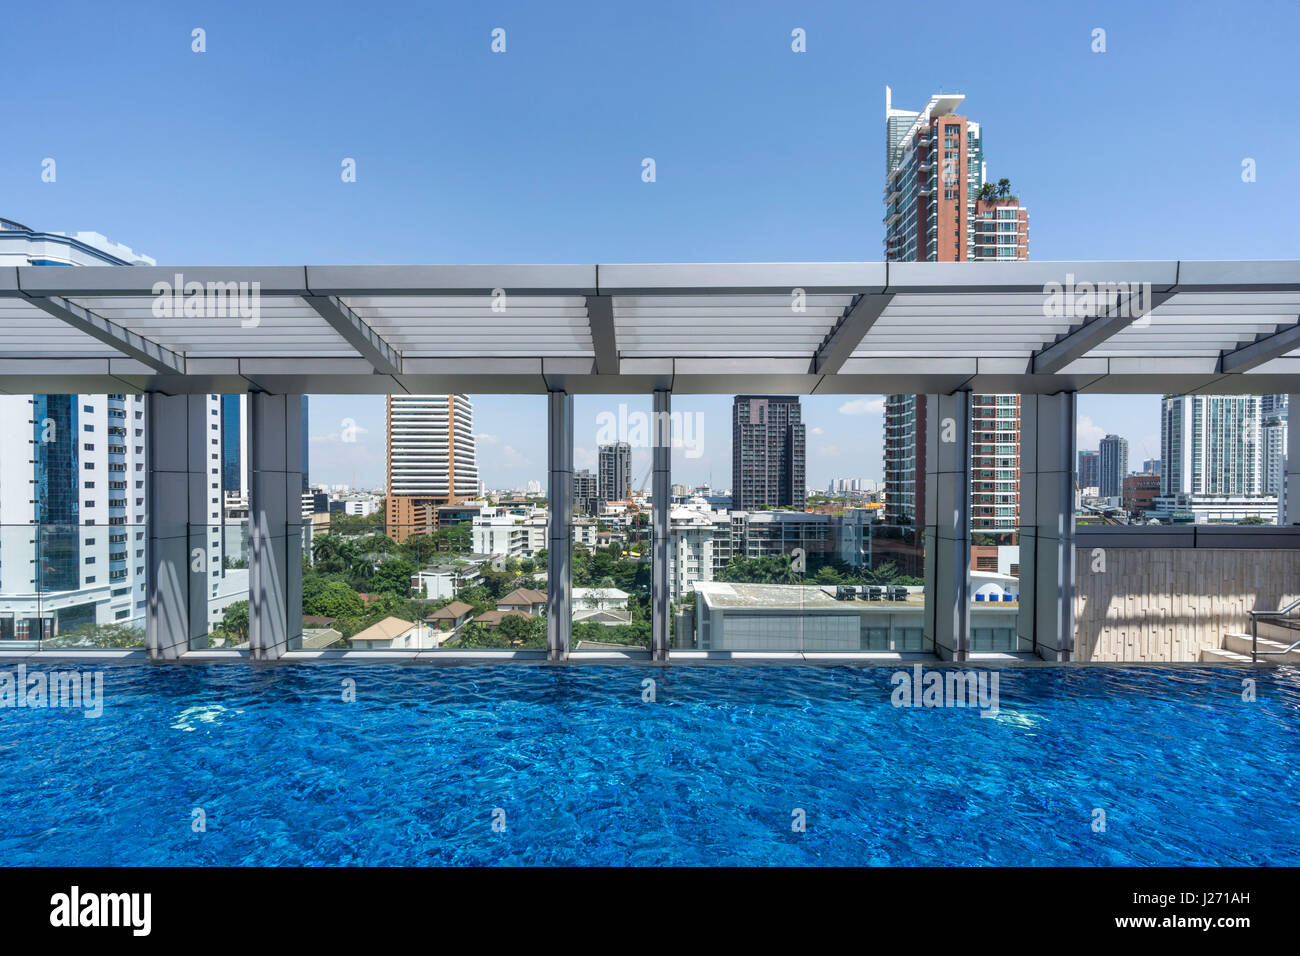 Hôtel Marriott Sukhumvit, piscine, Skyline, Bangkok, Thaïlande Photo Stock